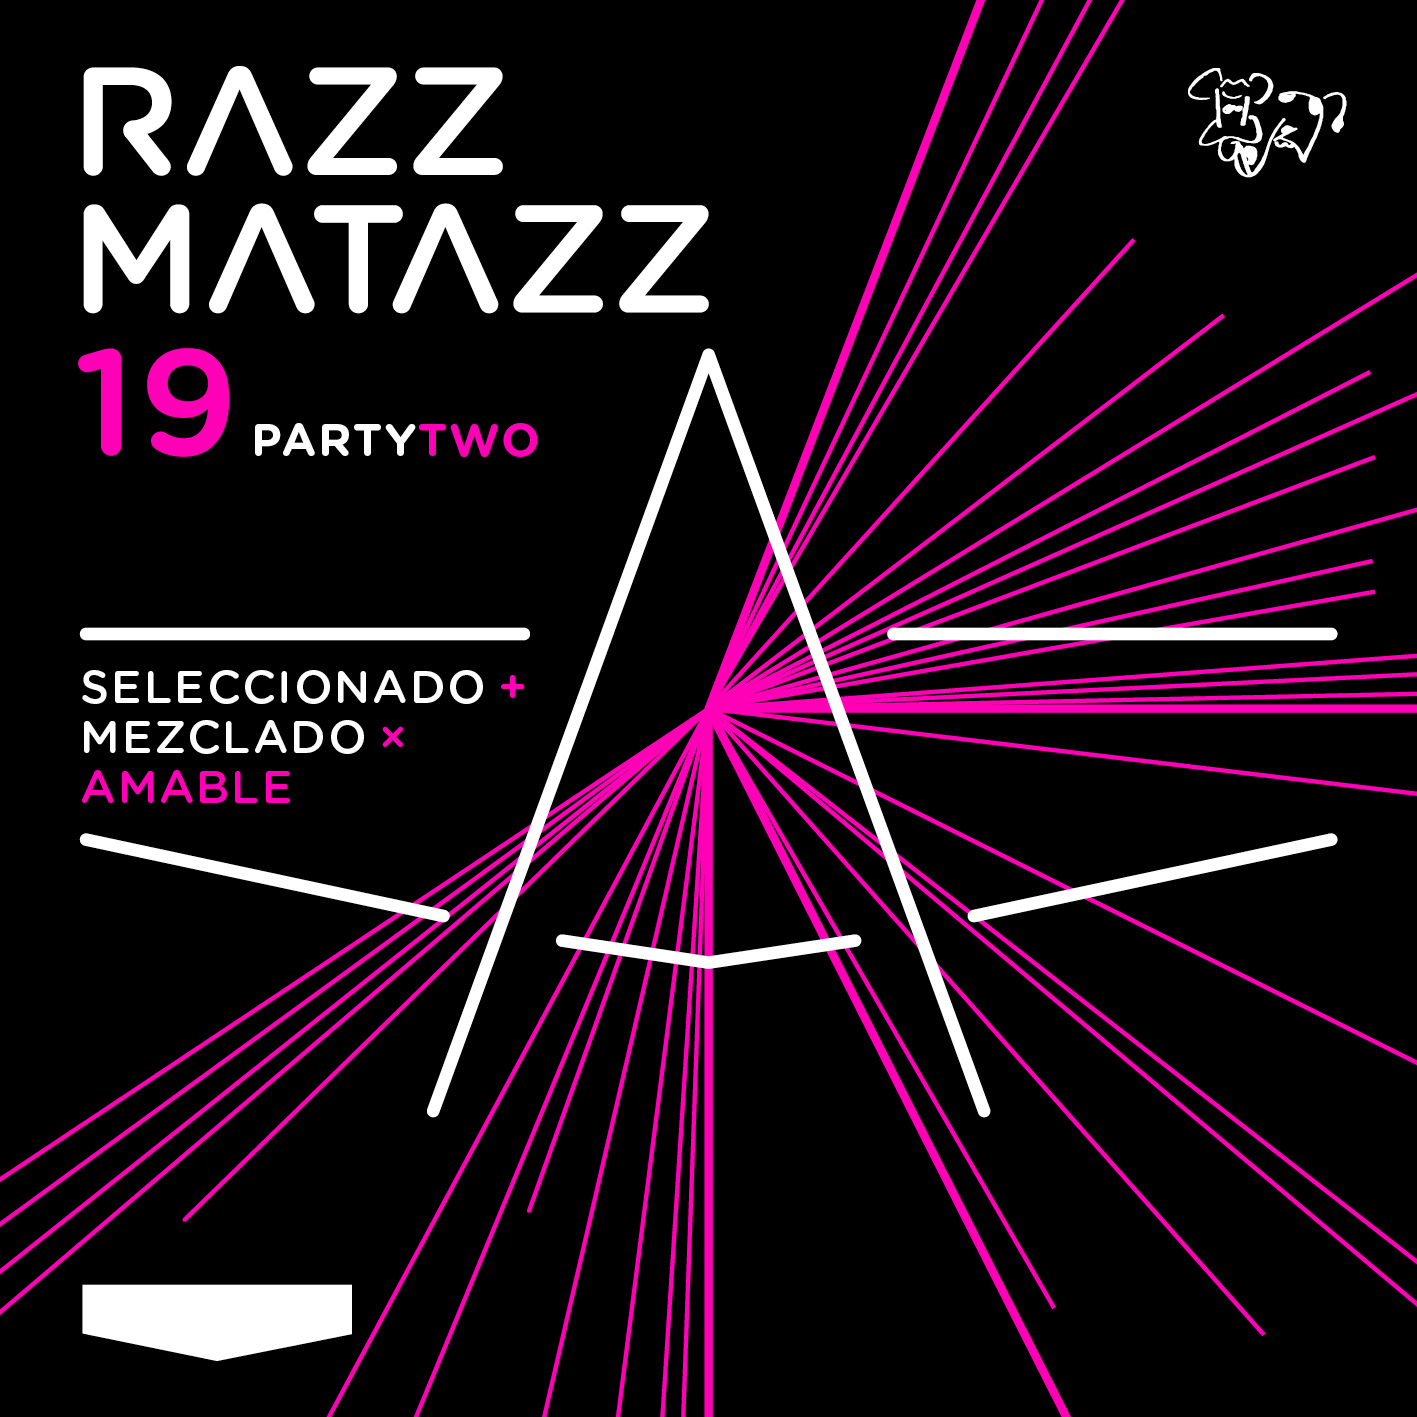 RAZZMATAZZ '19 Party Two